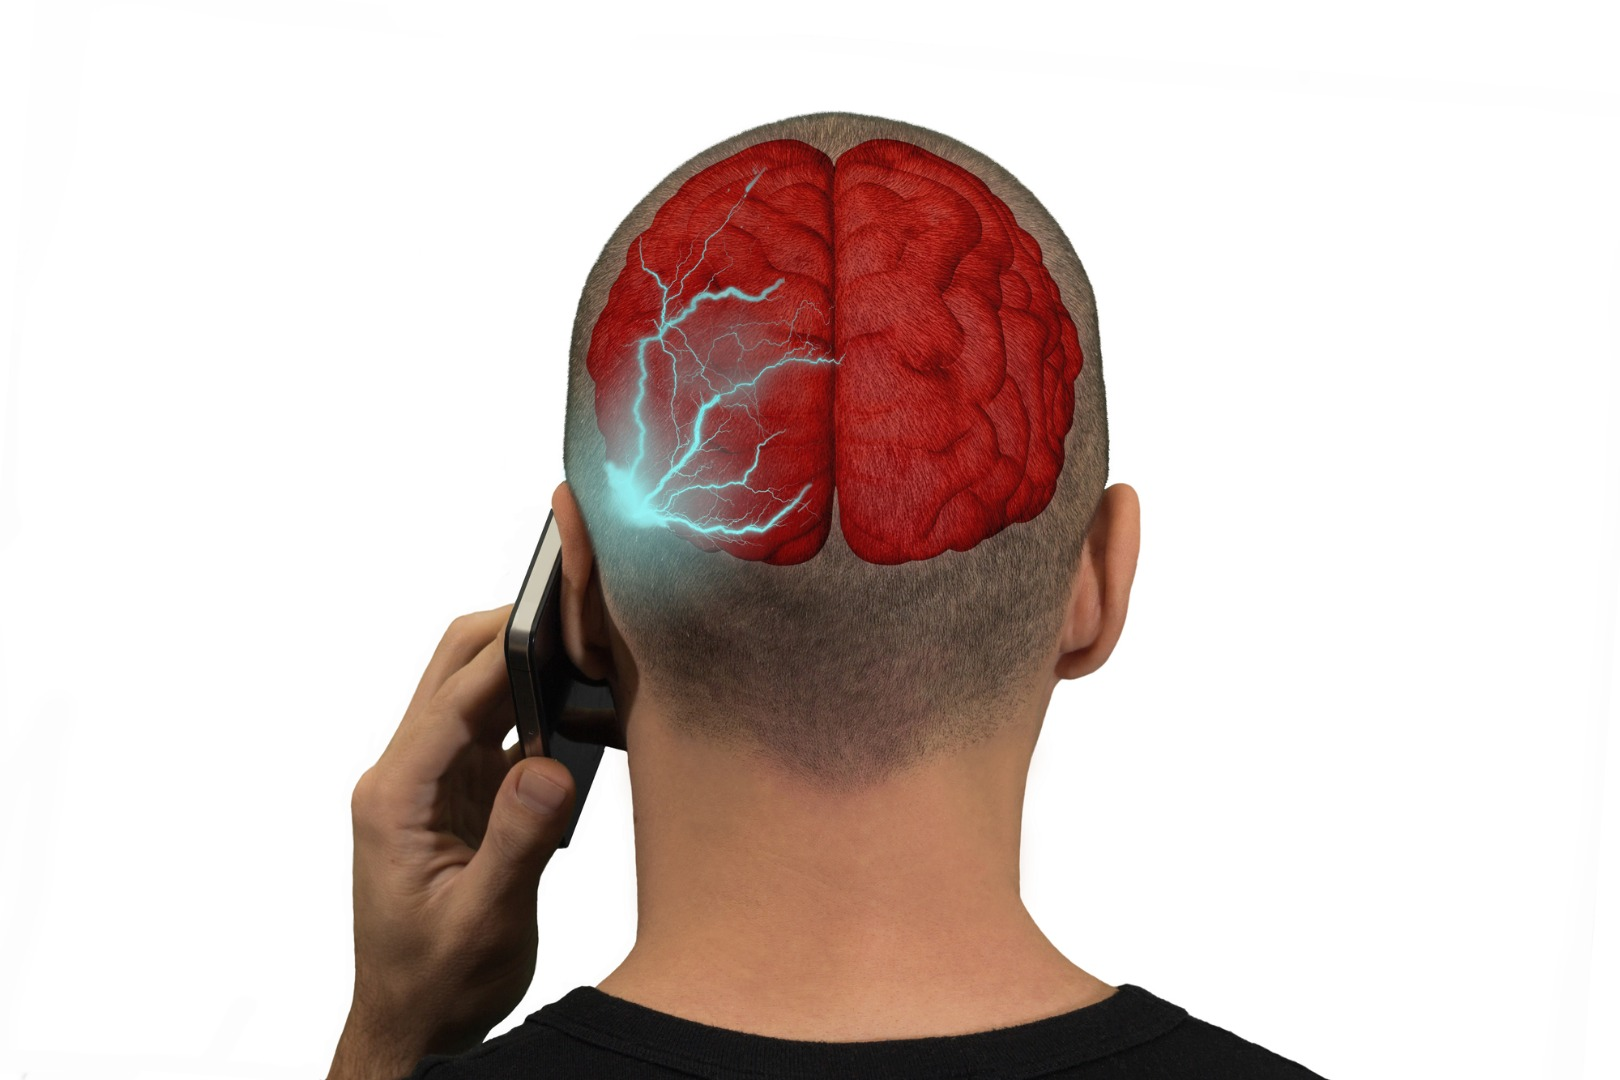 Massive study into link between cell phones and cancer is almost immediately irrelevant